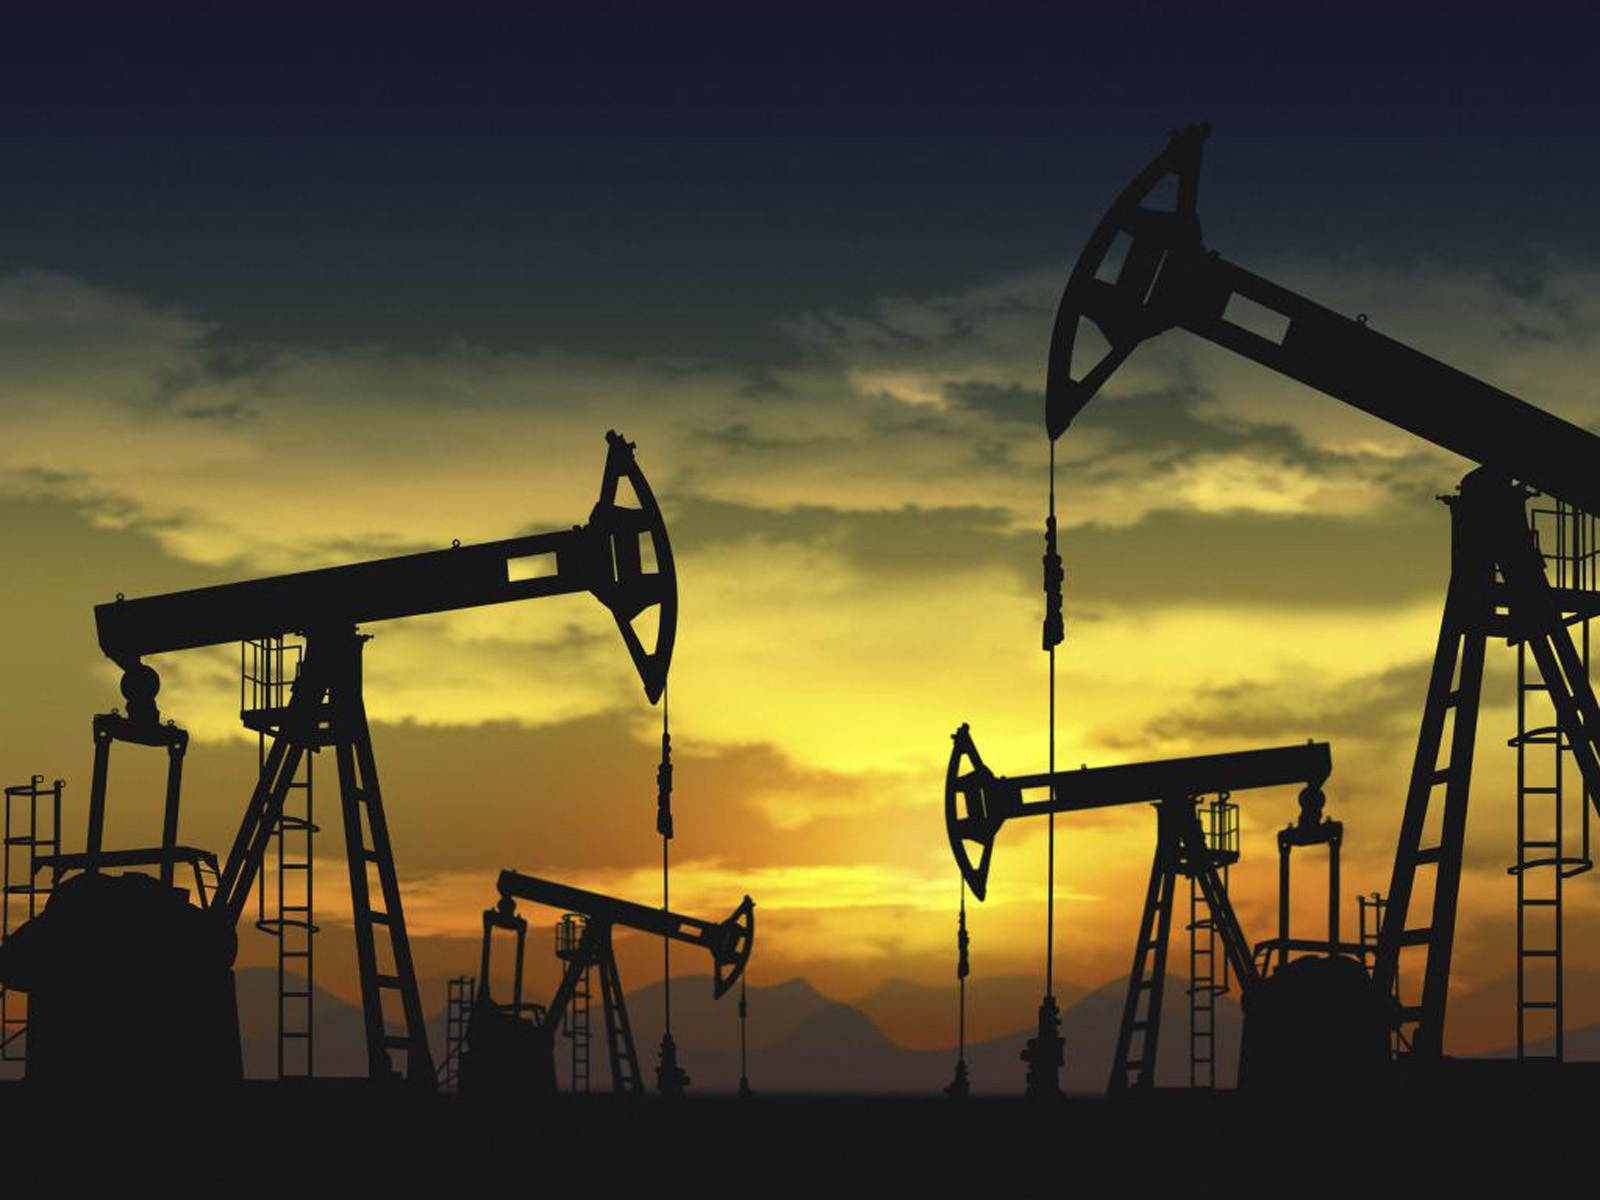 crude-oil-trading-well-below-30-us-tax-plan-raised-to-1025-a-barrel-104501_1